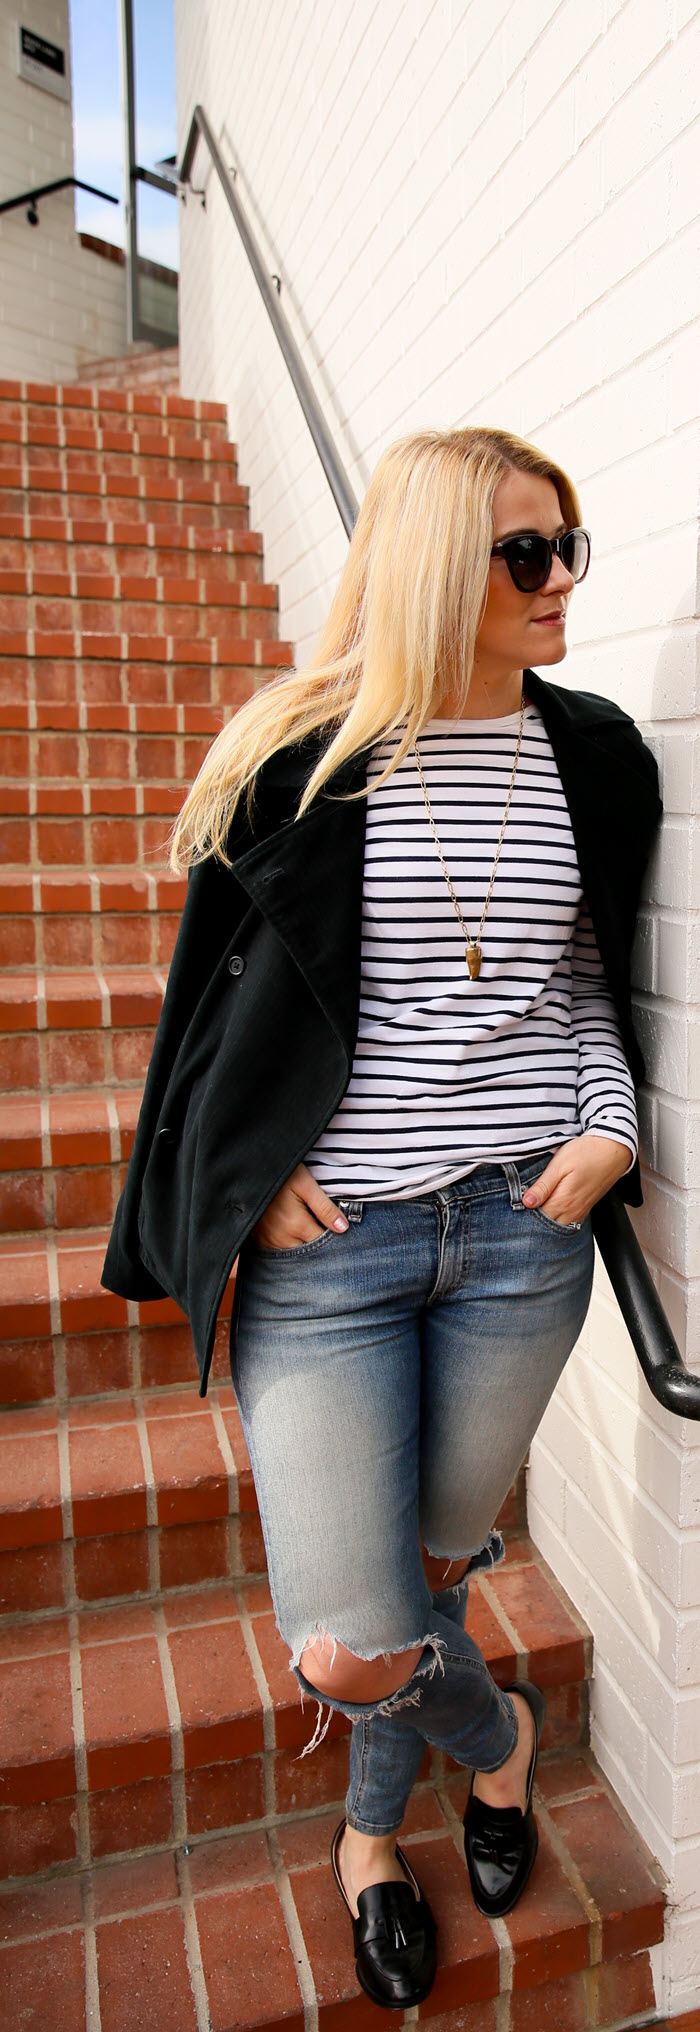 Women's Striped Blazer Outfit with Jeans - Why You Should Buy Some Clothes too Big #fashionblog #outfitideas #fashionblogger #winterstyle #fallfashion #stripes #blazer #womensfashion #womensstyle #womenover30 #losangeles #denim #rippedjeans #rippeddenim #ragandbone #lablogger